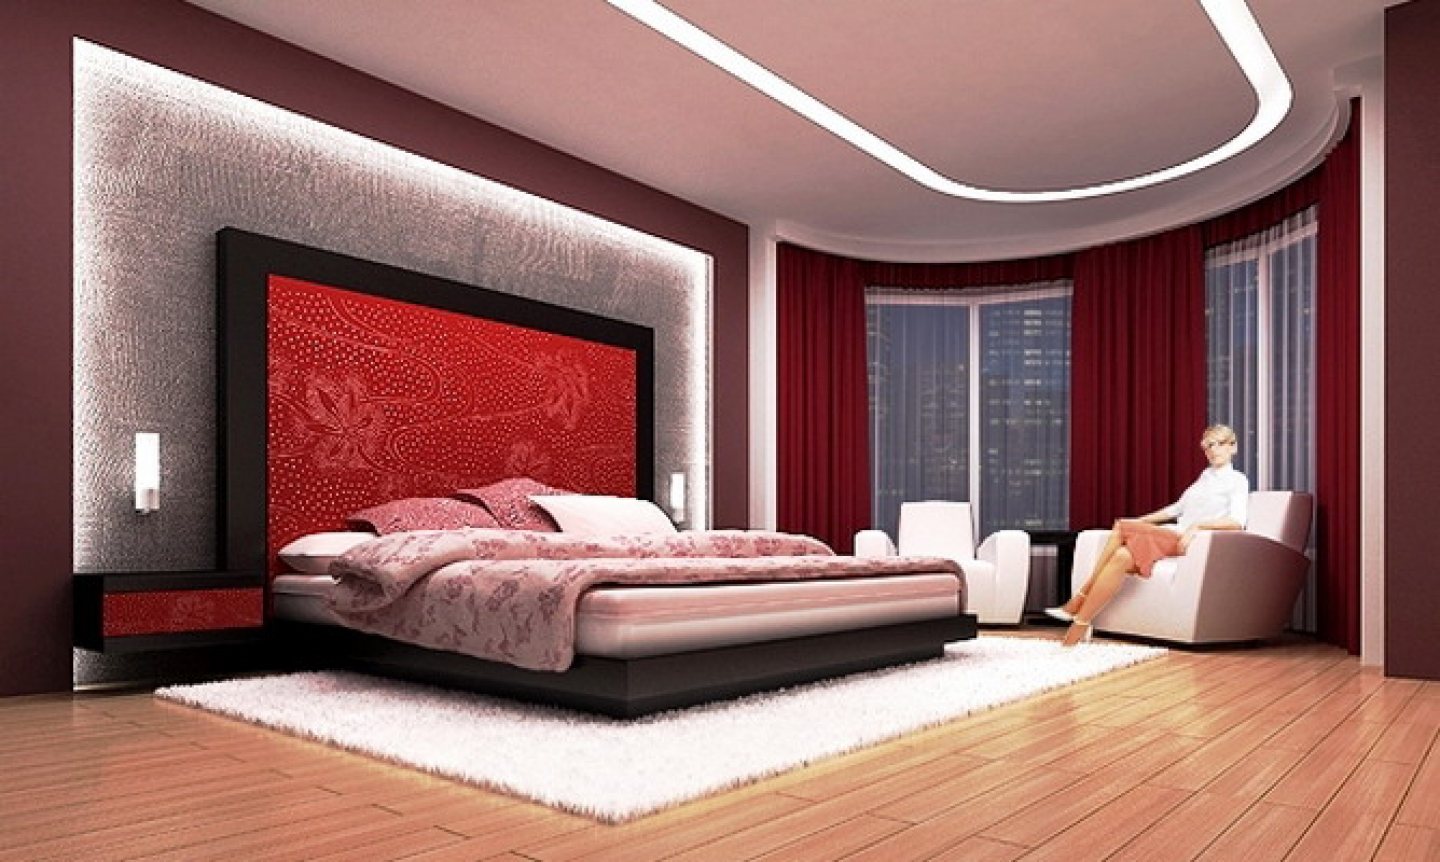 Home Design Bedroom Ideas Interior Design Center Inspiration